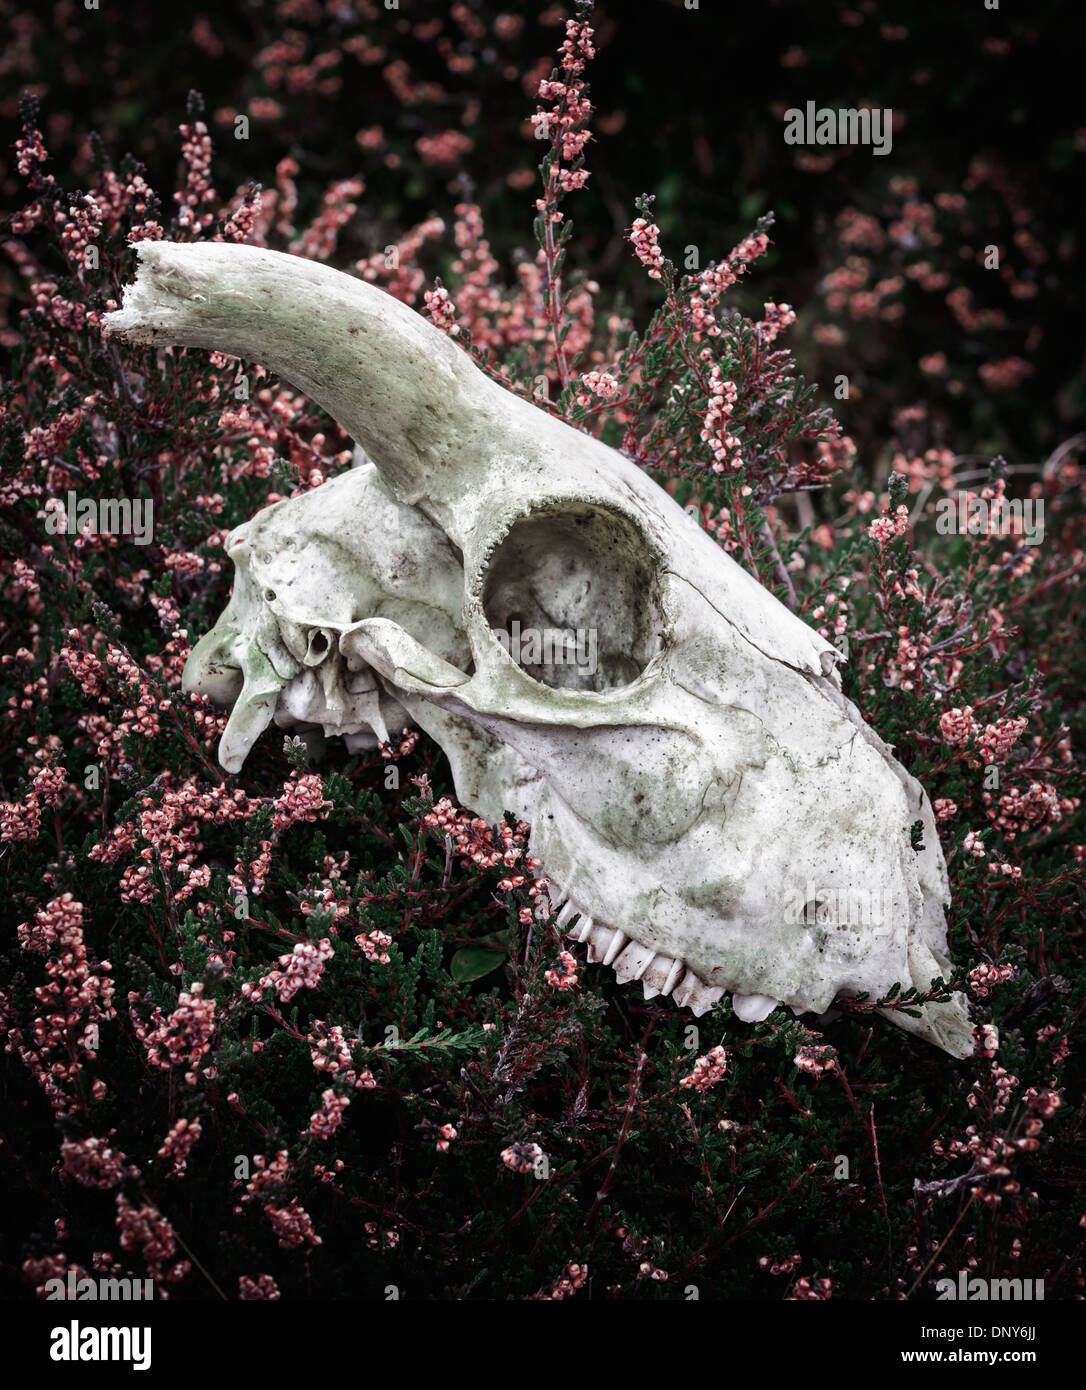 Sheep skull resting amongst heather - Stock Image